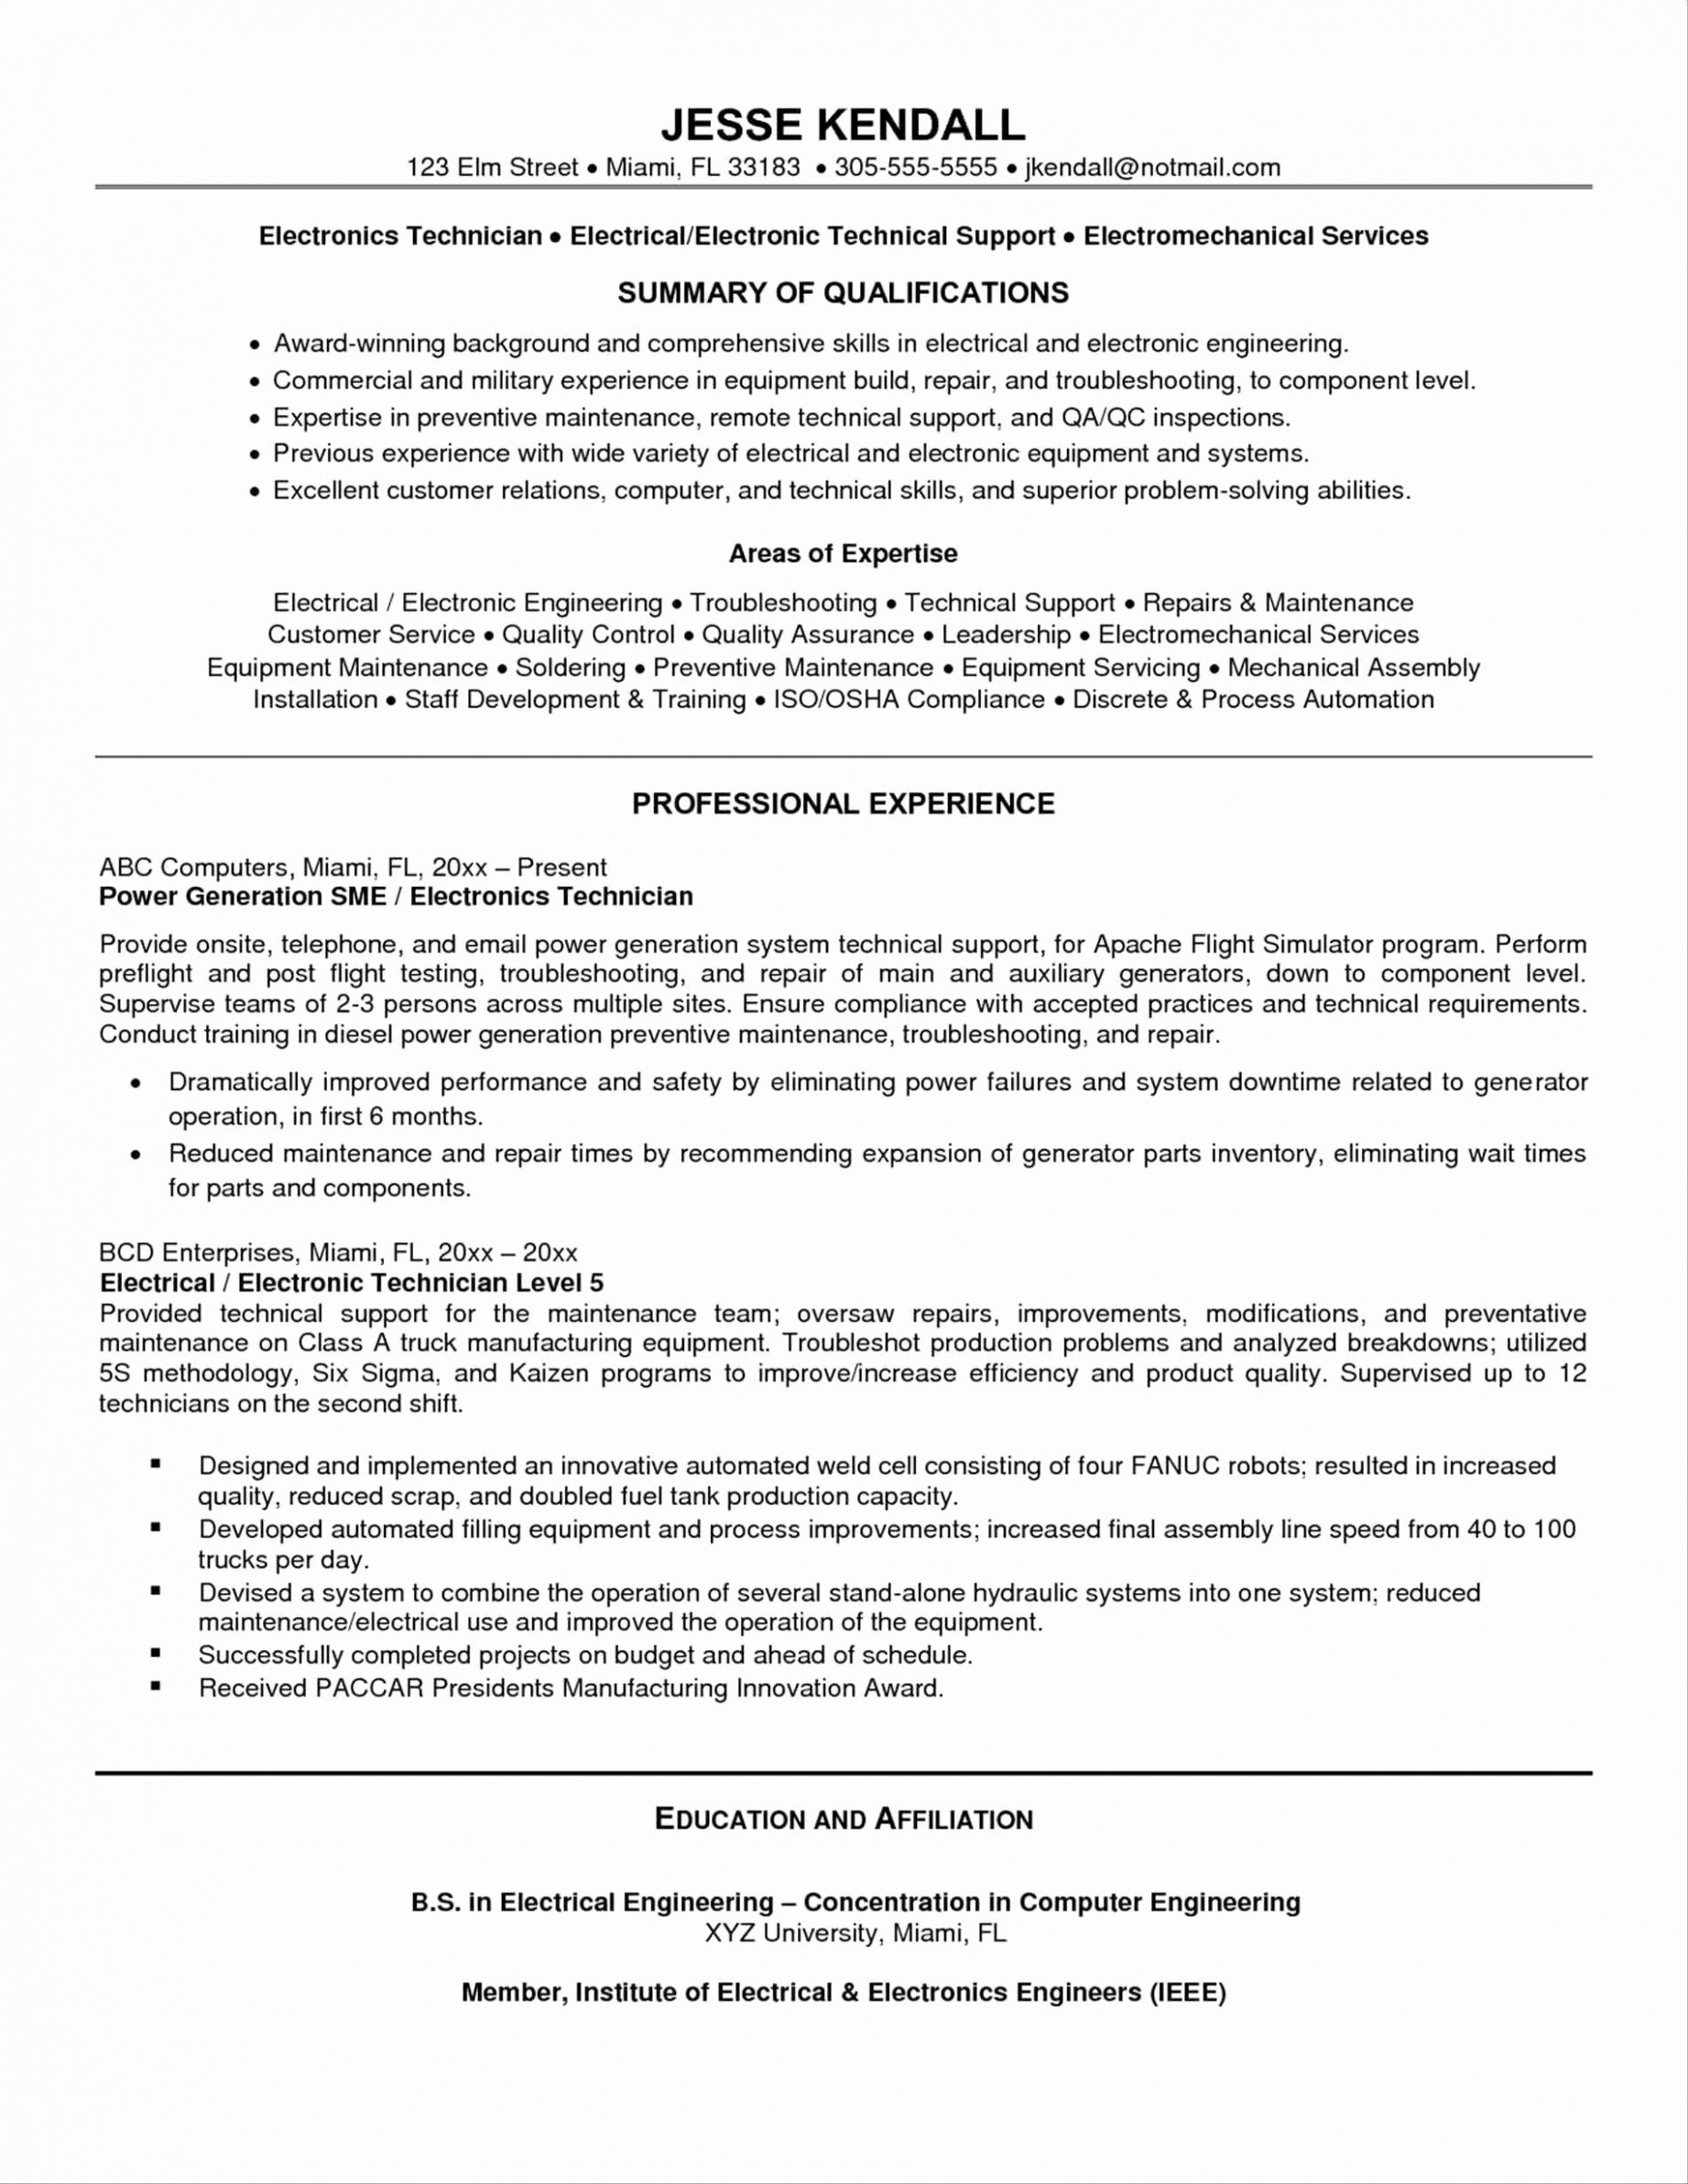 Resume for Pharmacy Technician - Entry Level Pharmacy Technician Resume Reference Pharmacy Technician